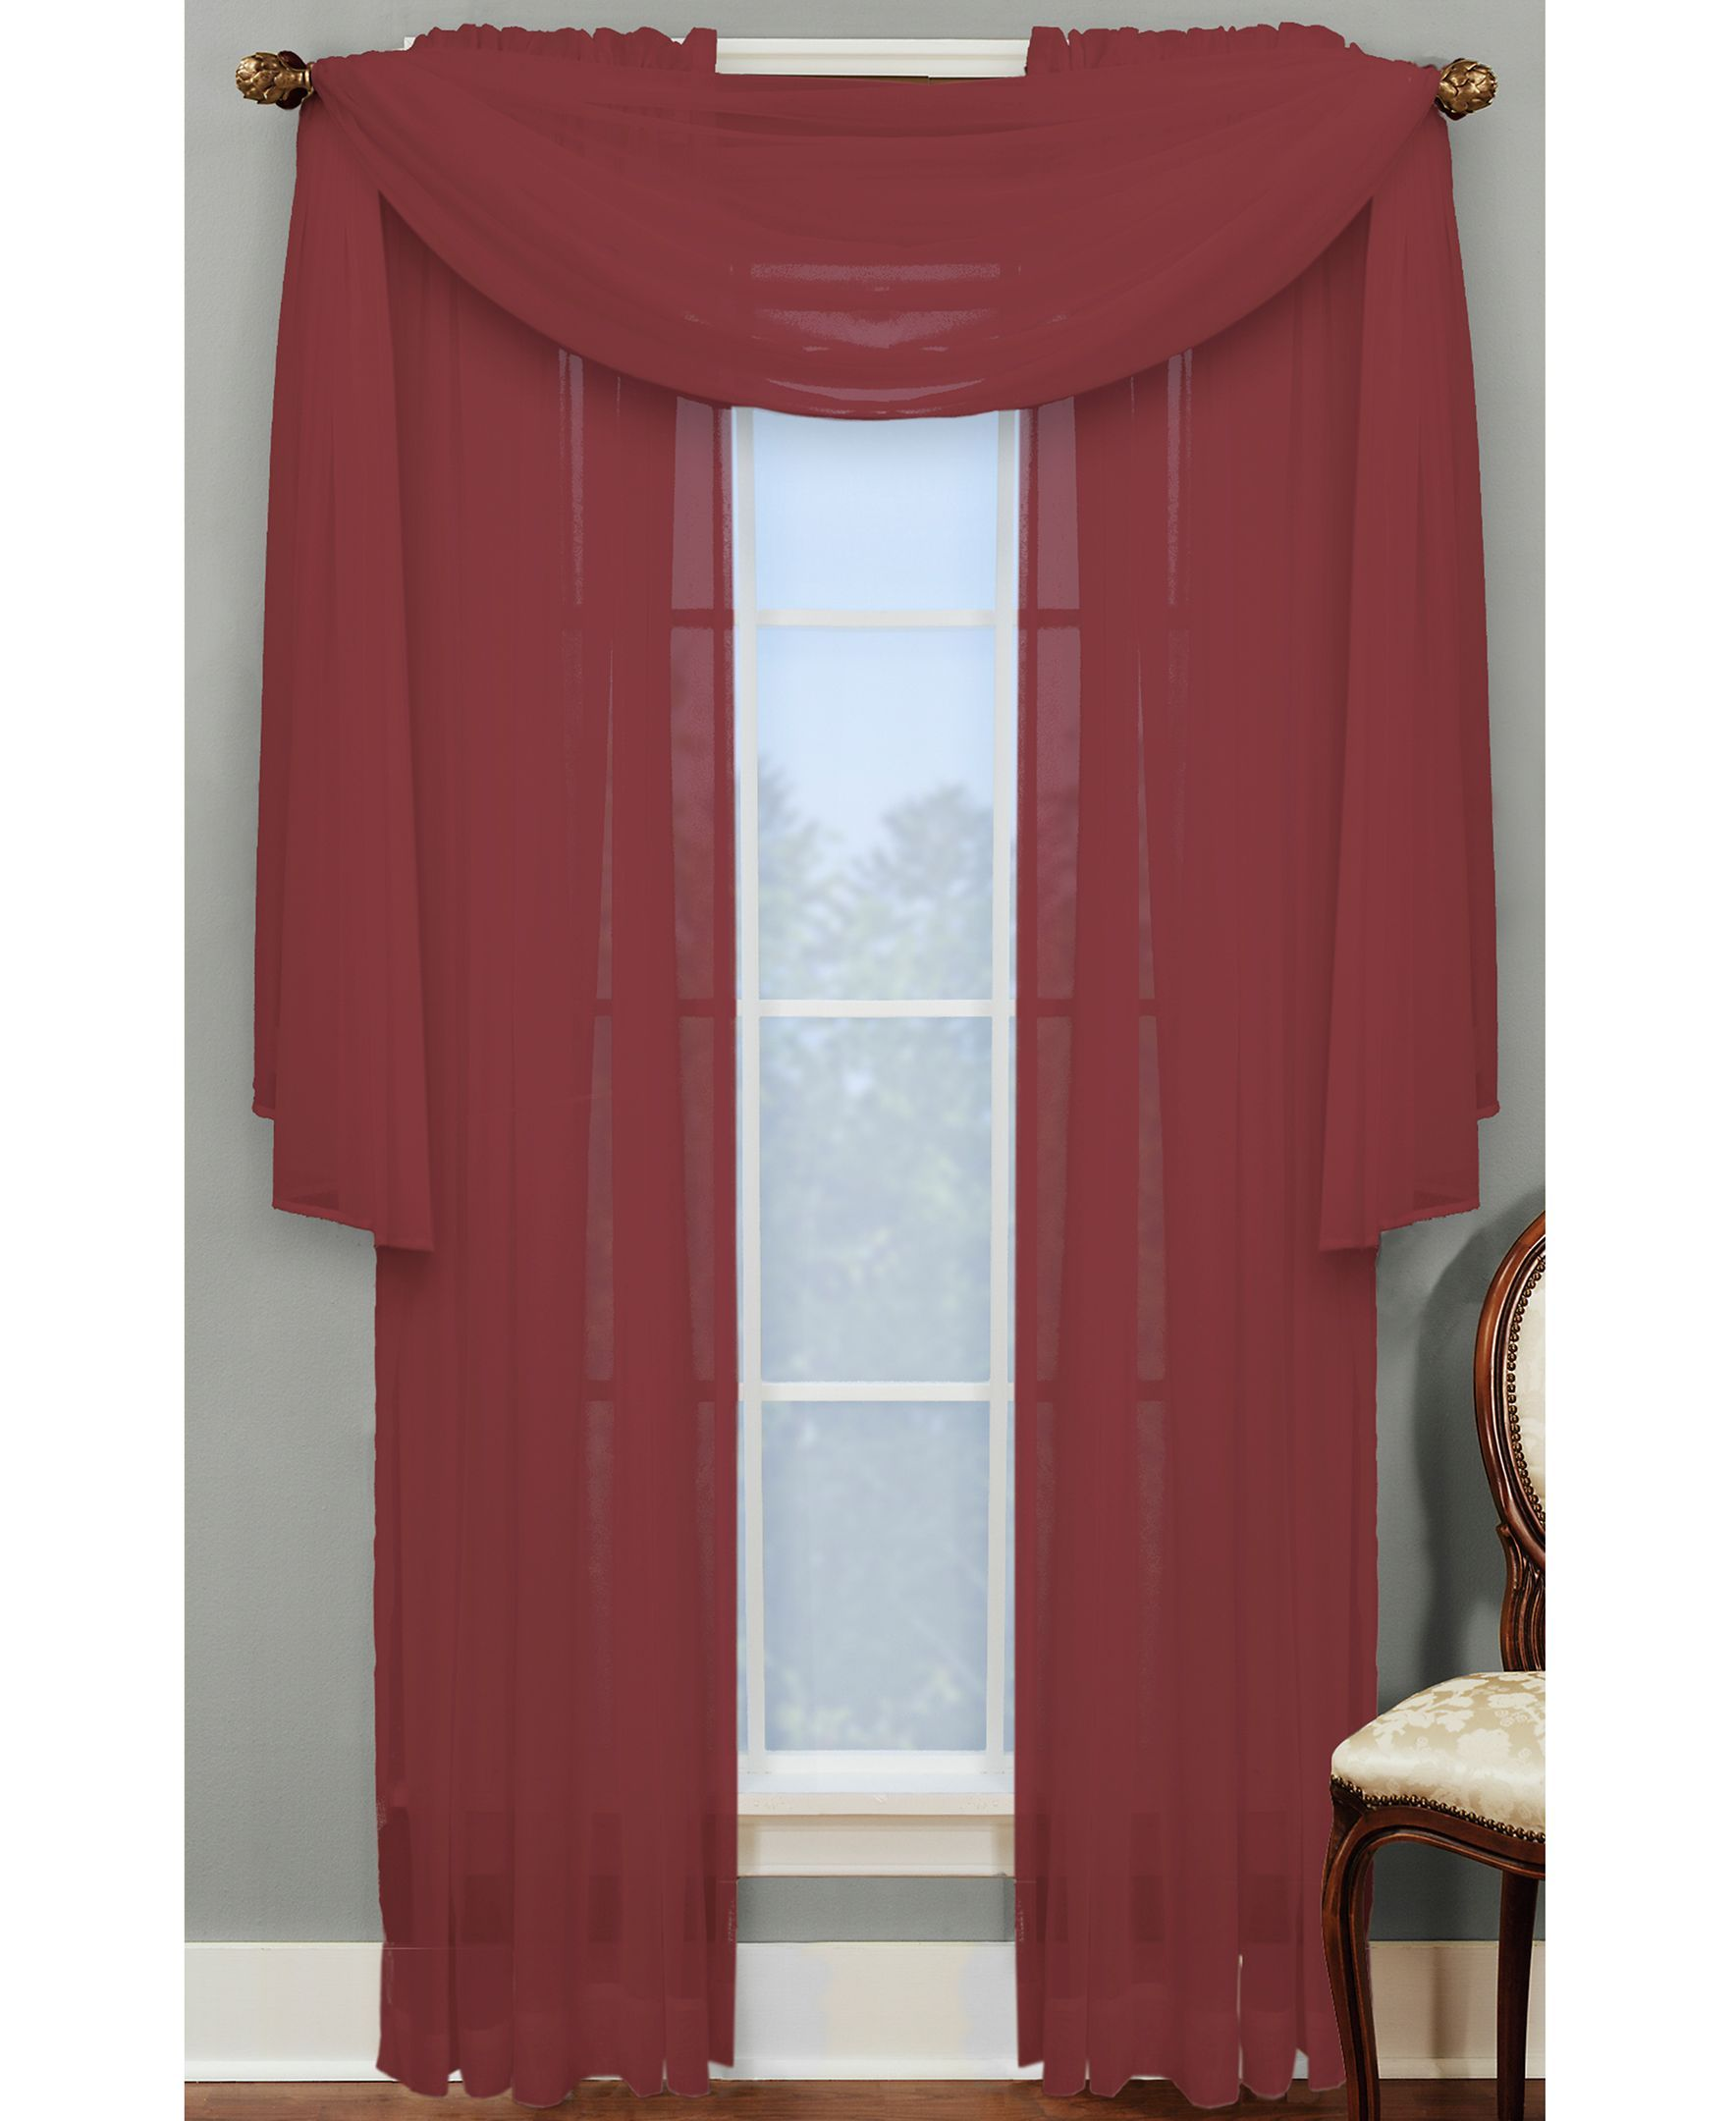 Miller Curtains Sheer Angelica Volie 56 X 216 Scarf Valance